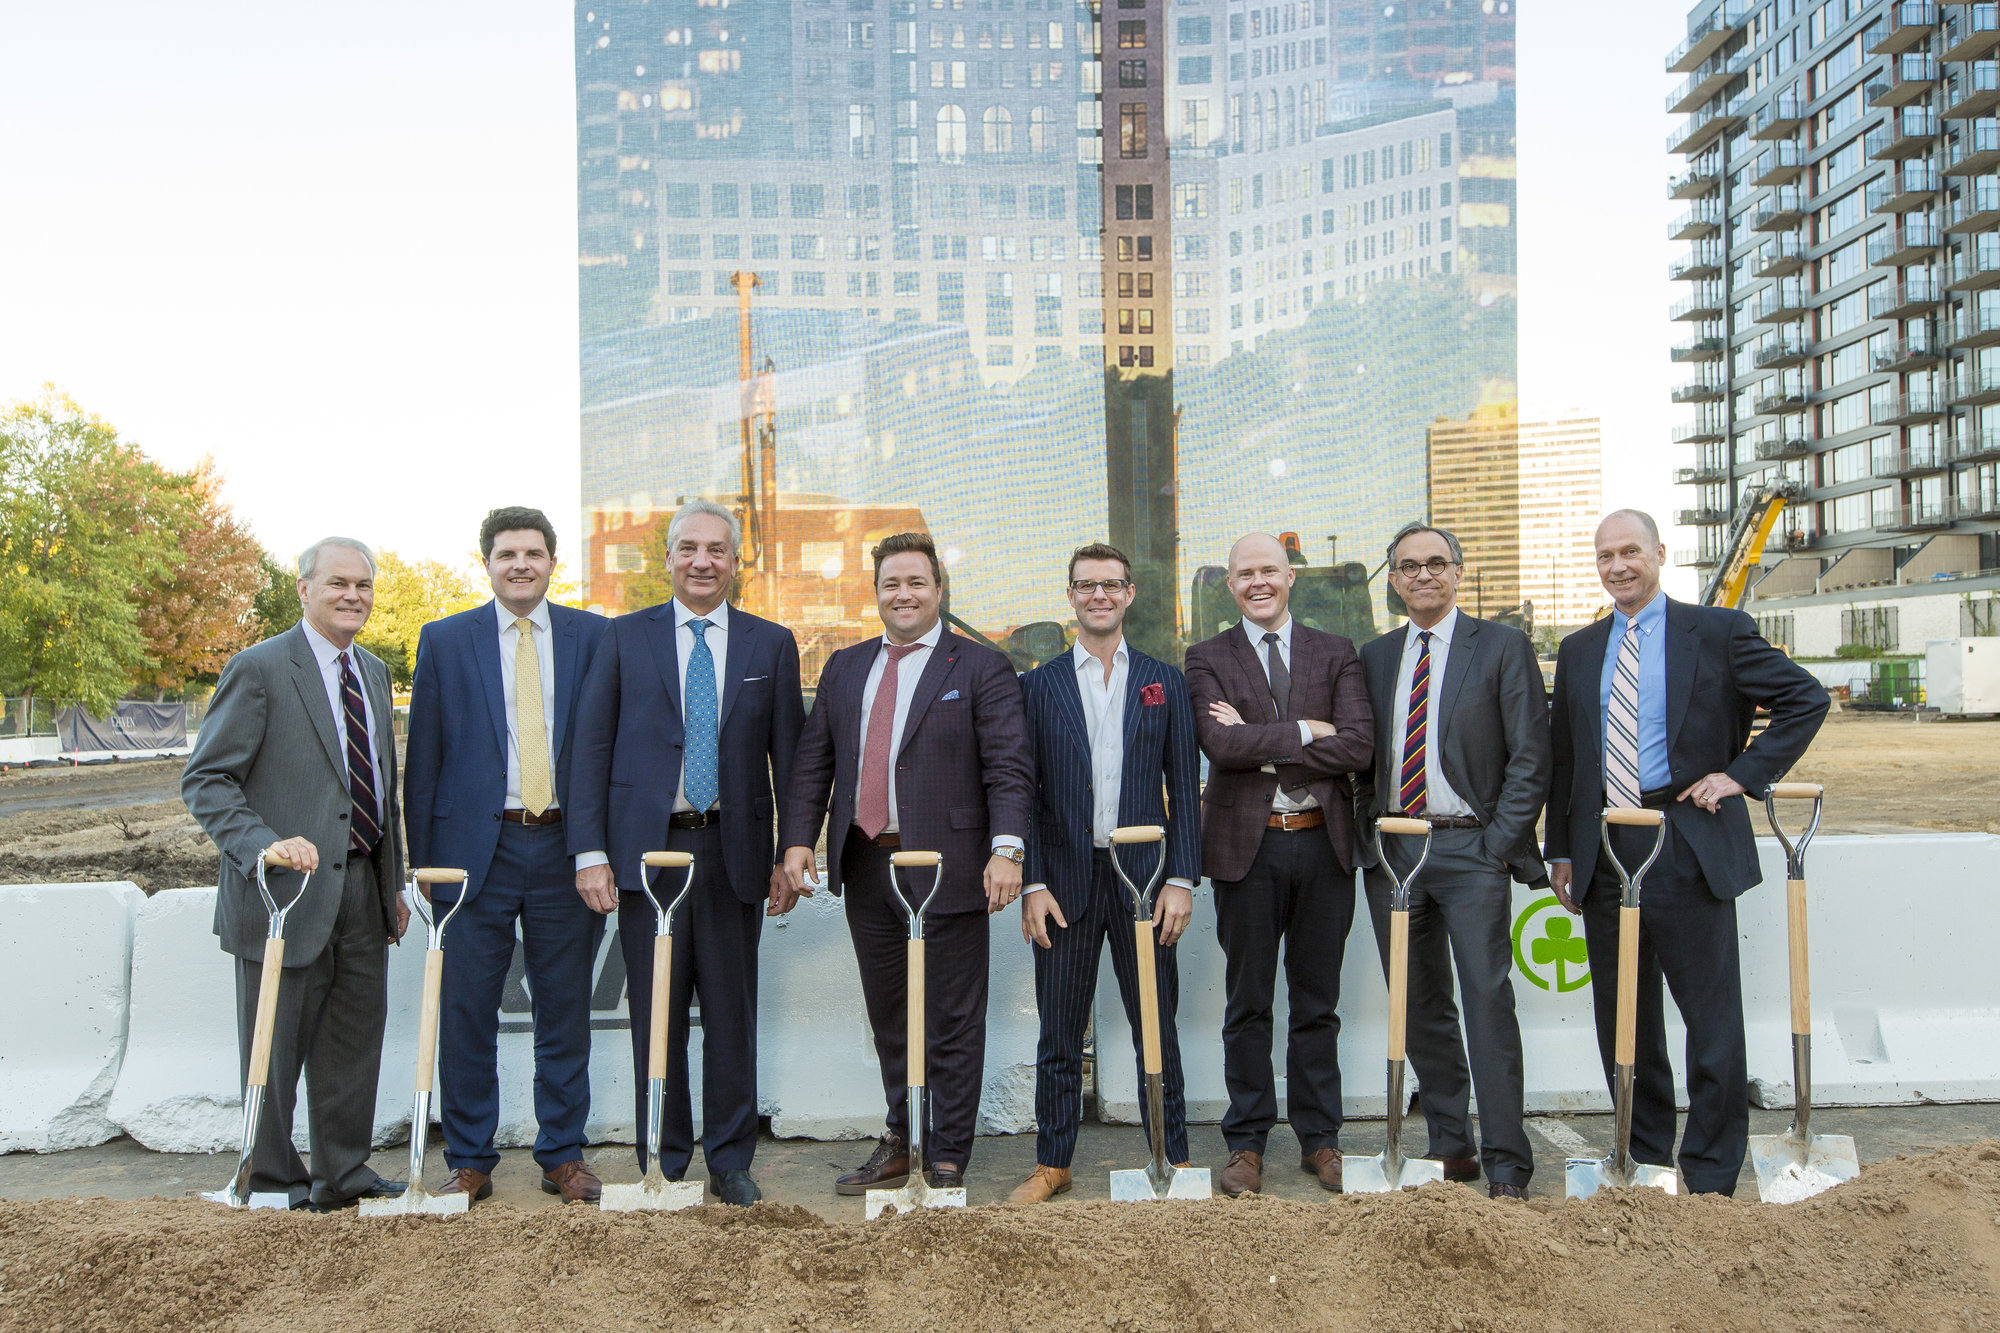 Ground breaking of Eleven on the river condos